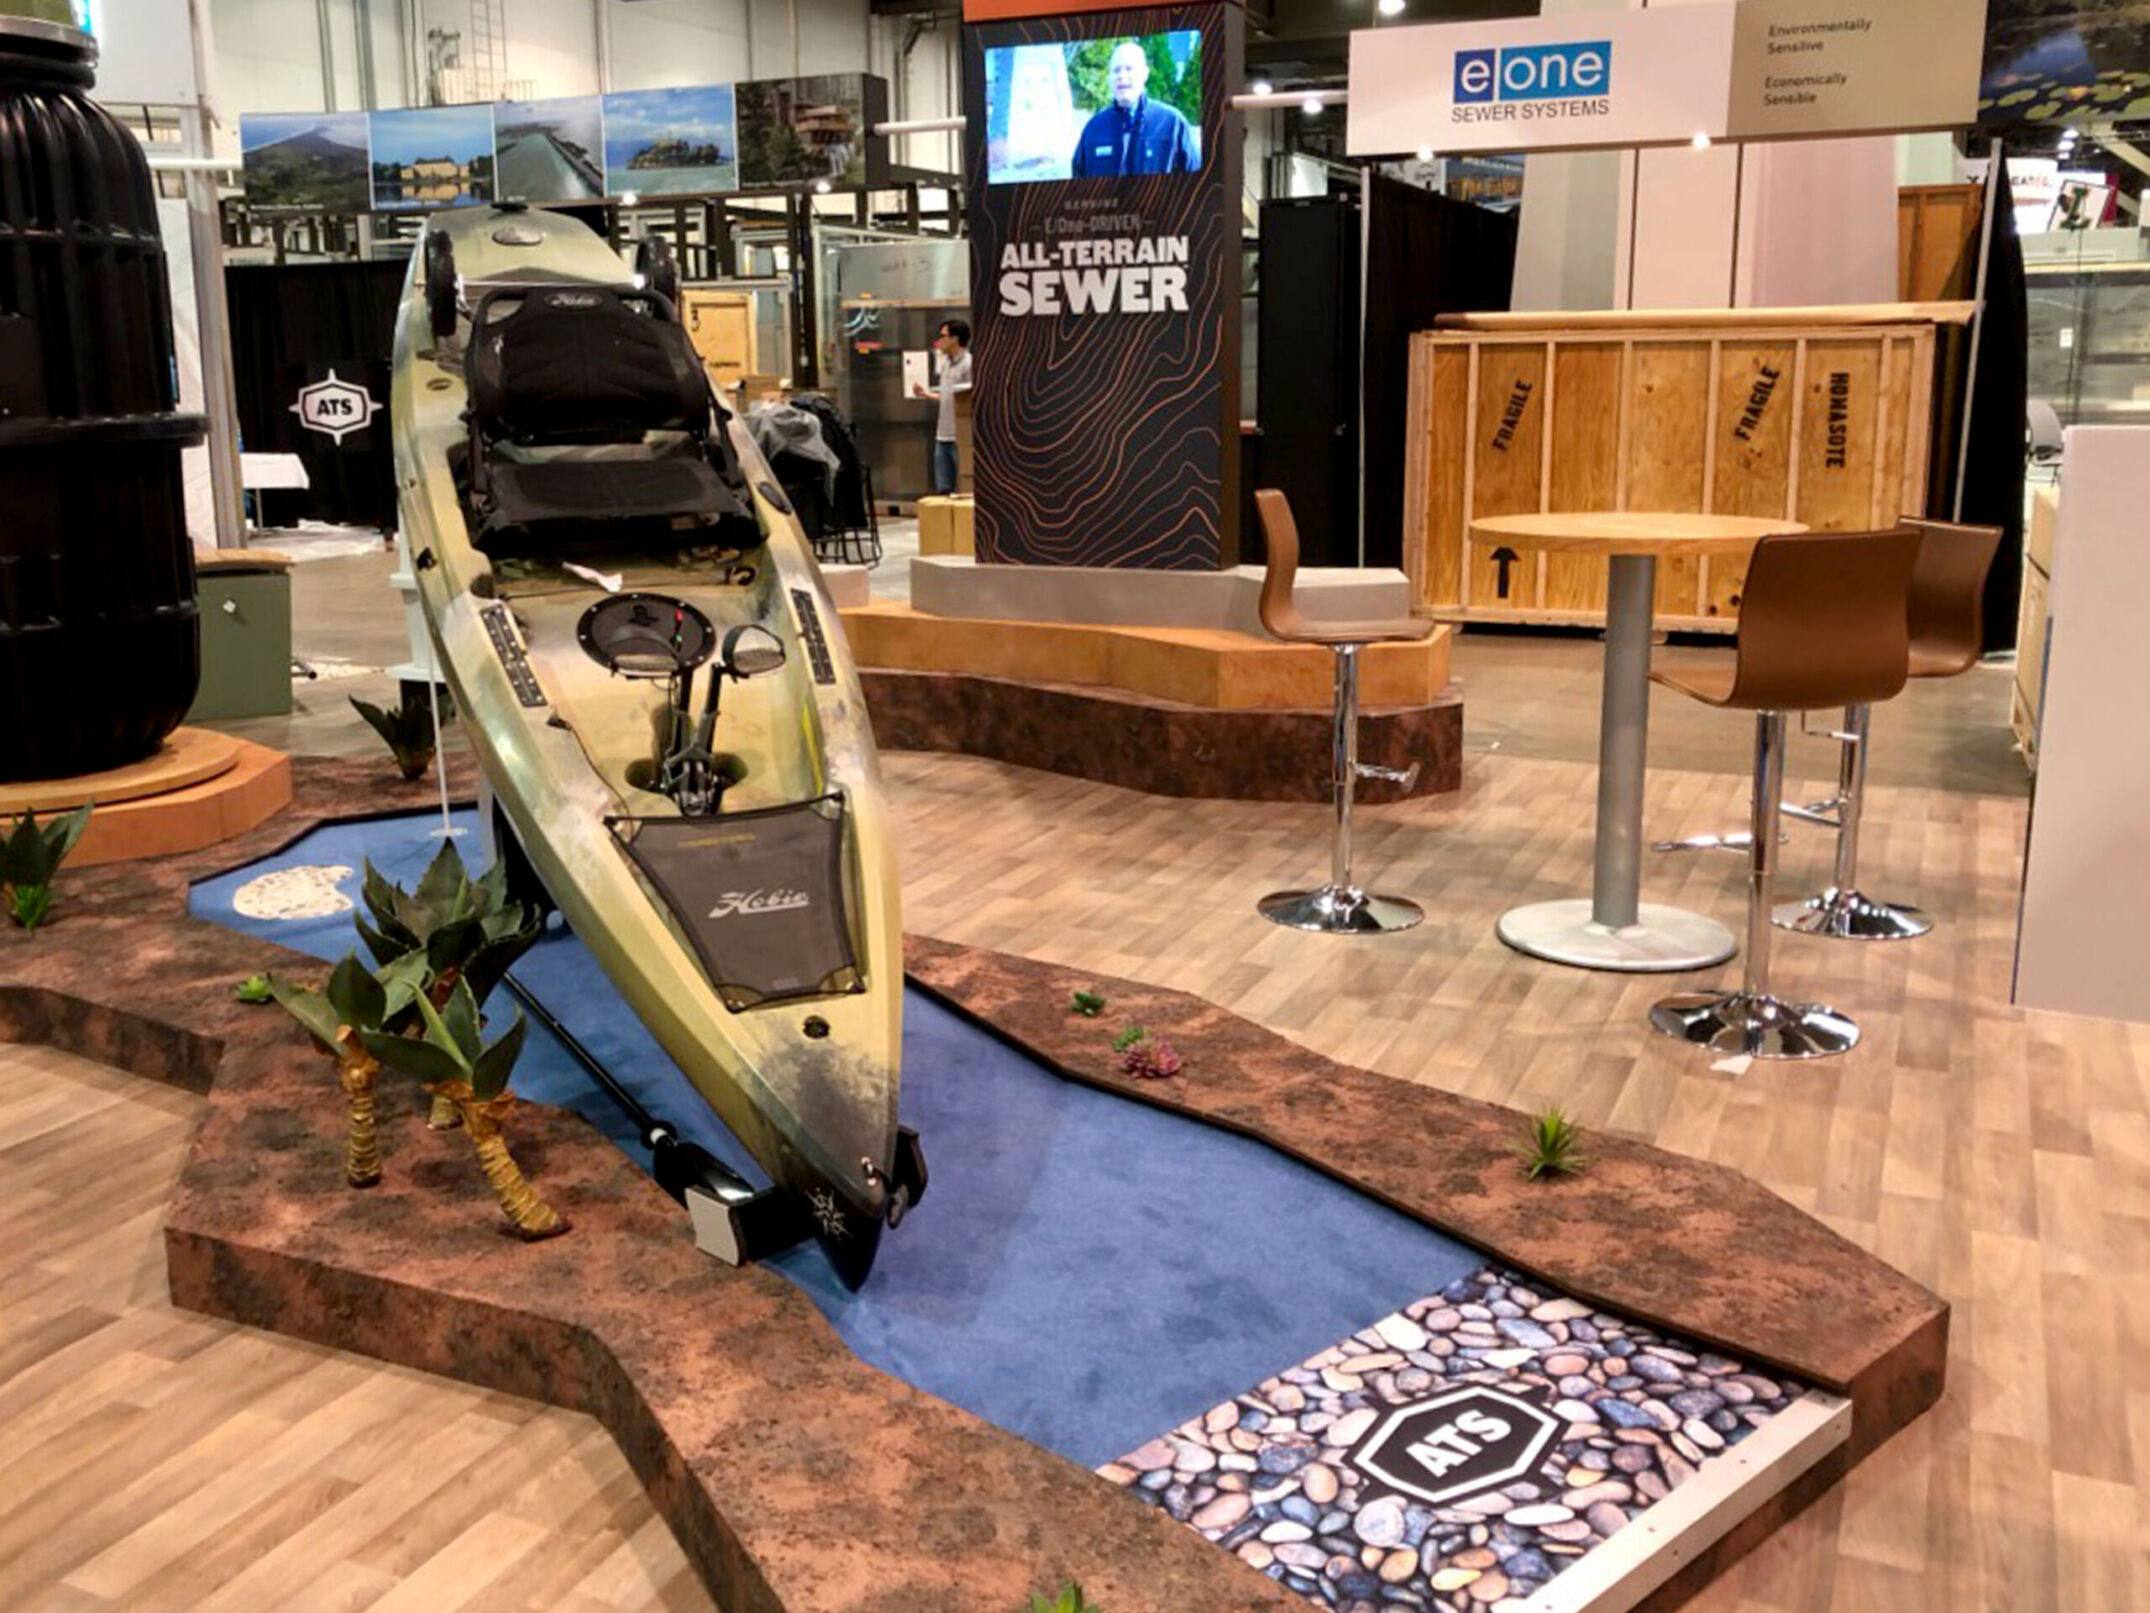 Mini Golf hole with kayak and display with concealed monitor for EOne trade show exhibit booth